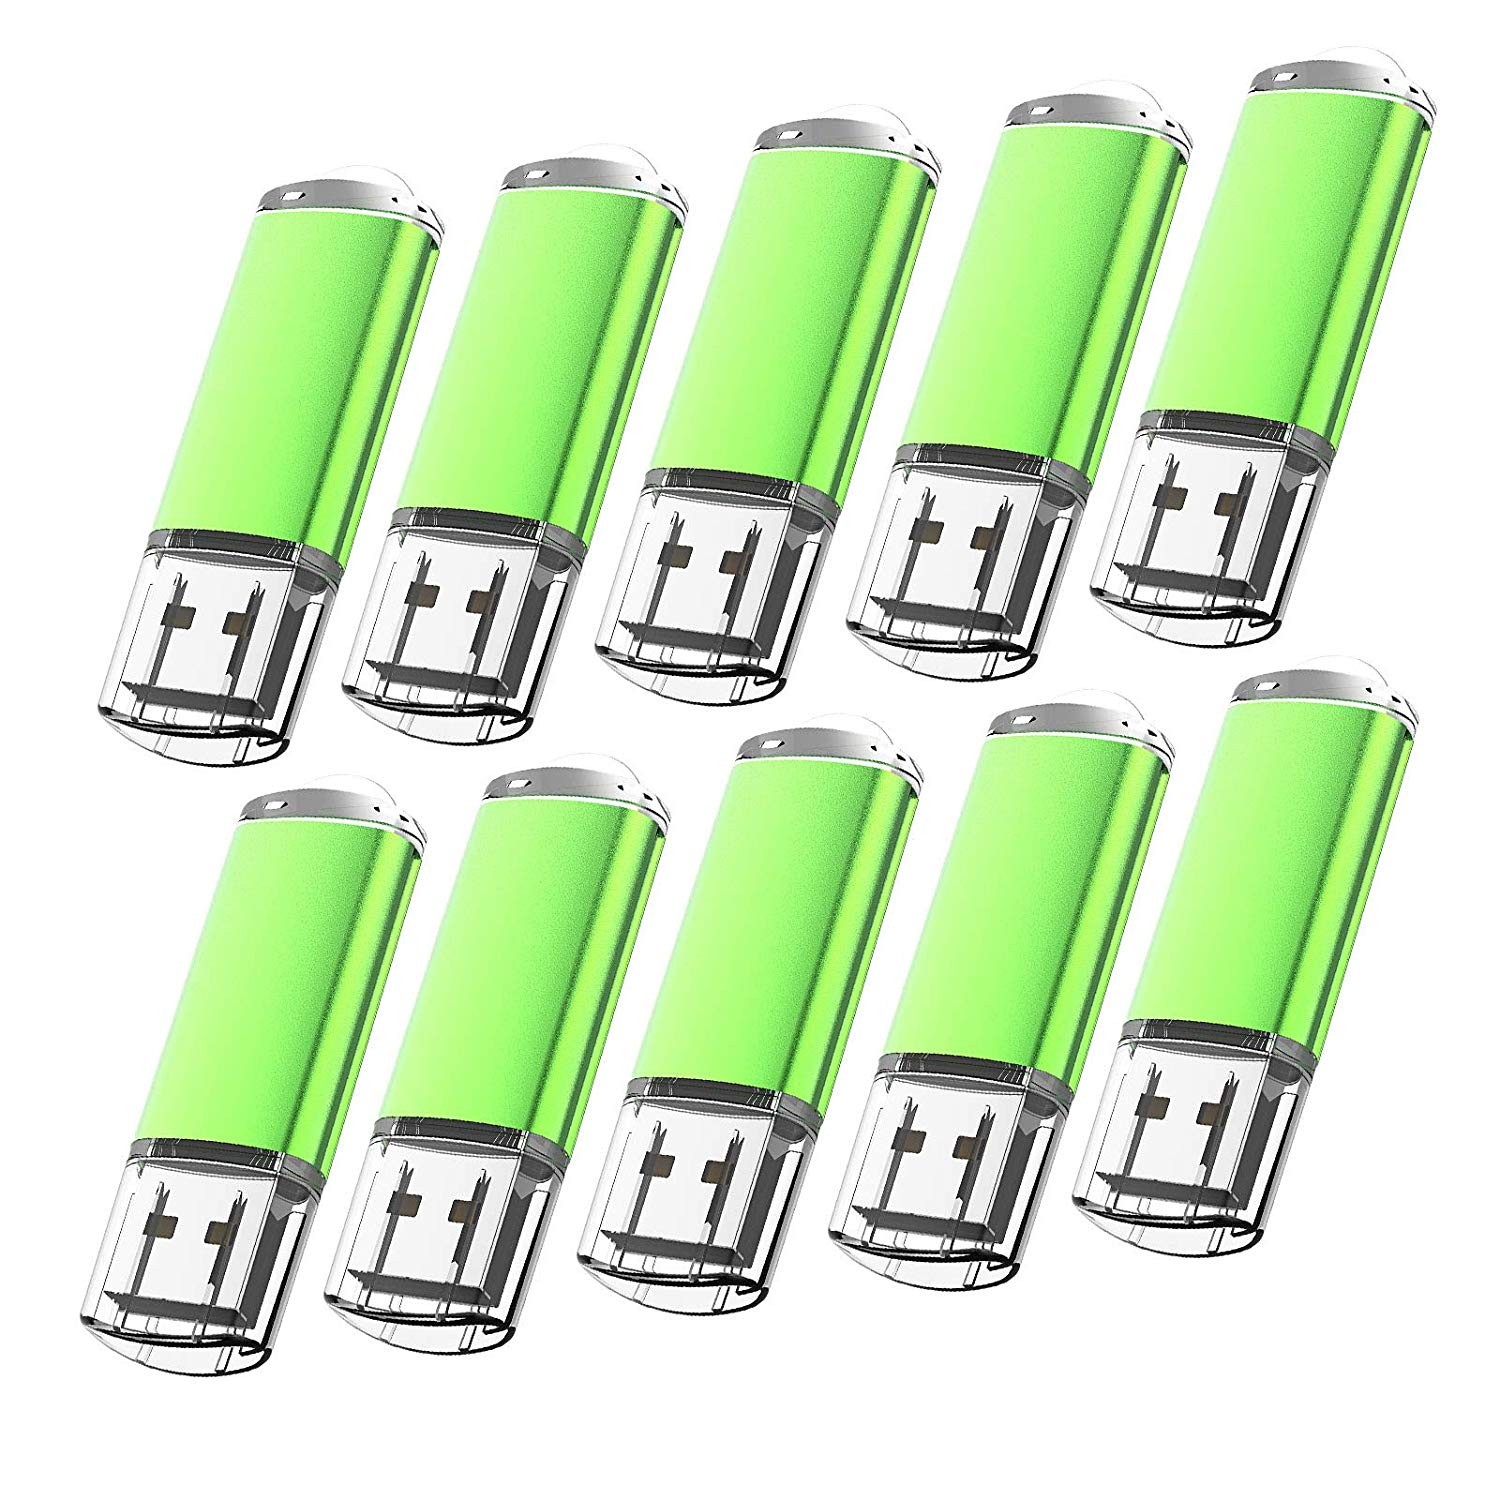 KOOTION 10 Pack 2GB USB 2.0 Flash Drives Memory Stick Thumb Drive, Green